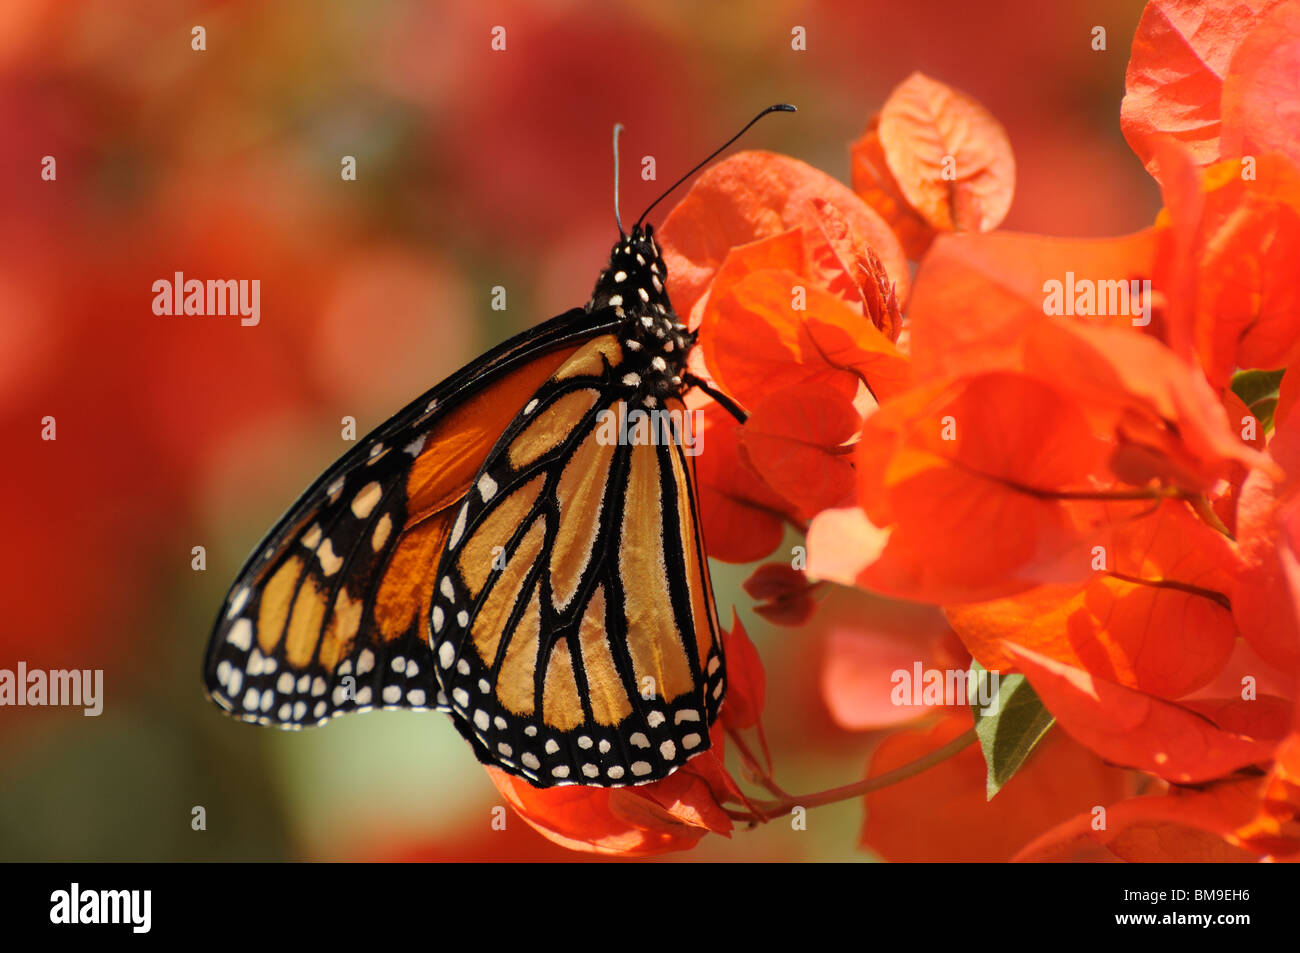 Closeup of the Monarch Butterfly - Stock Image